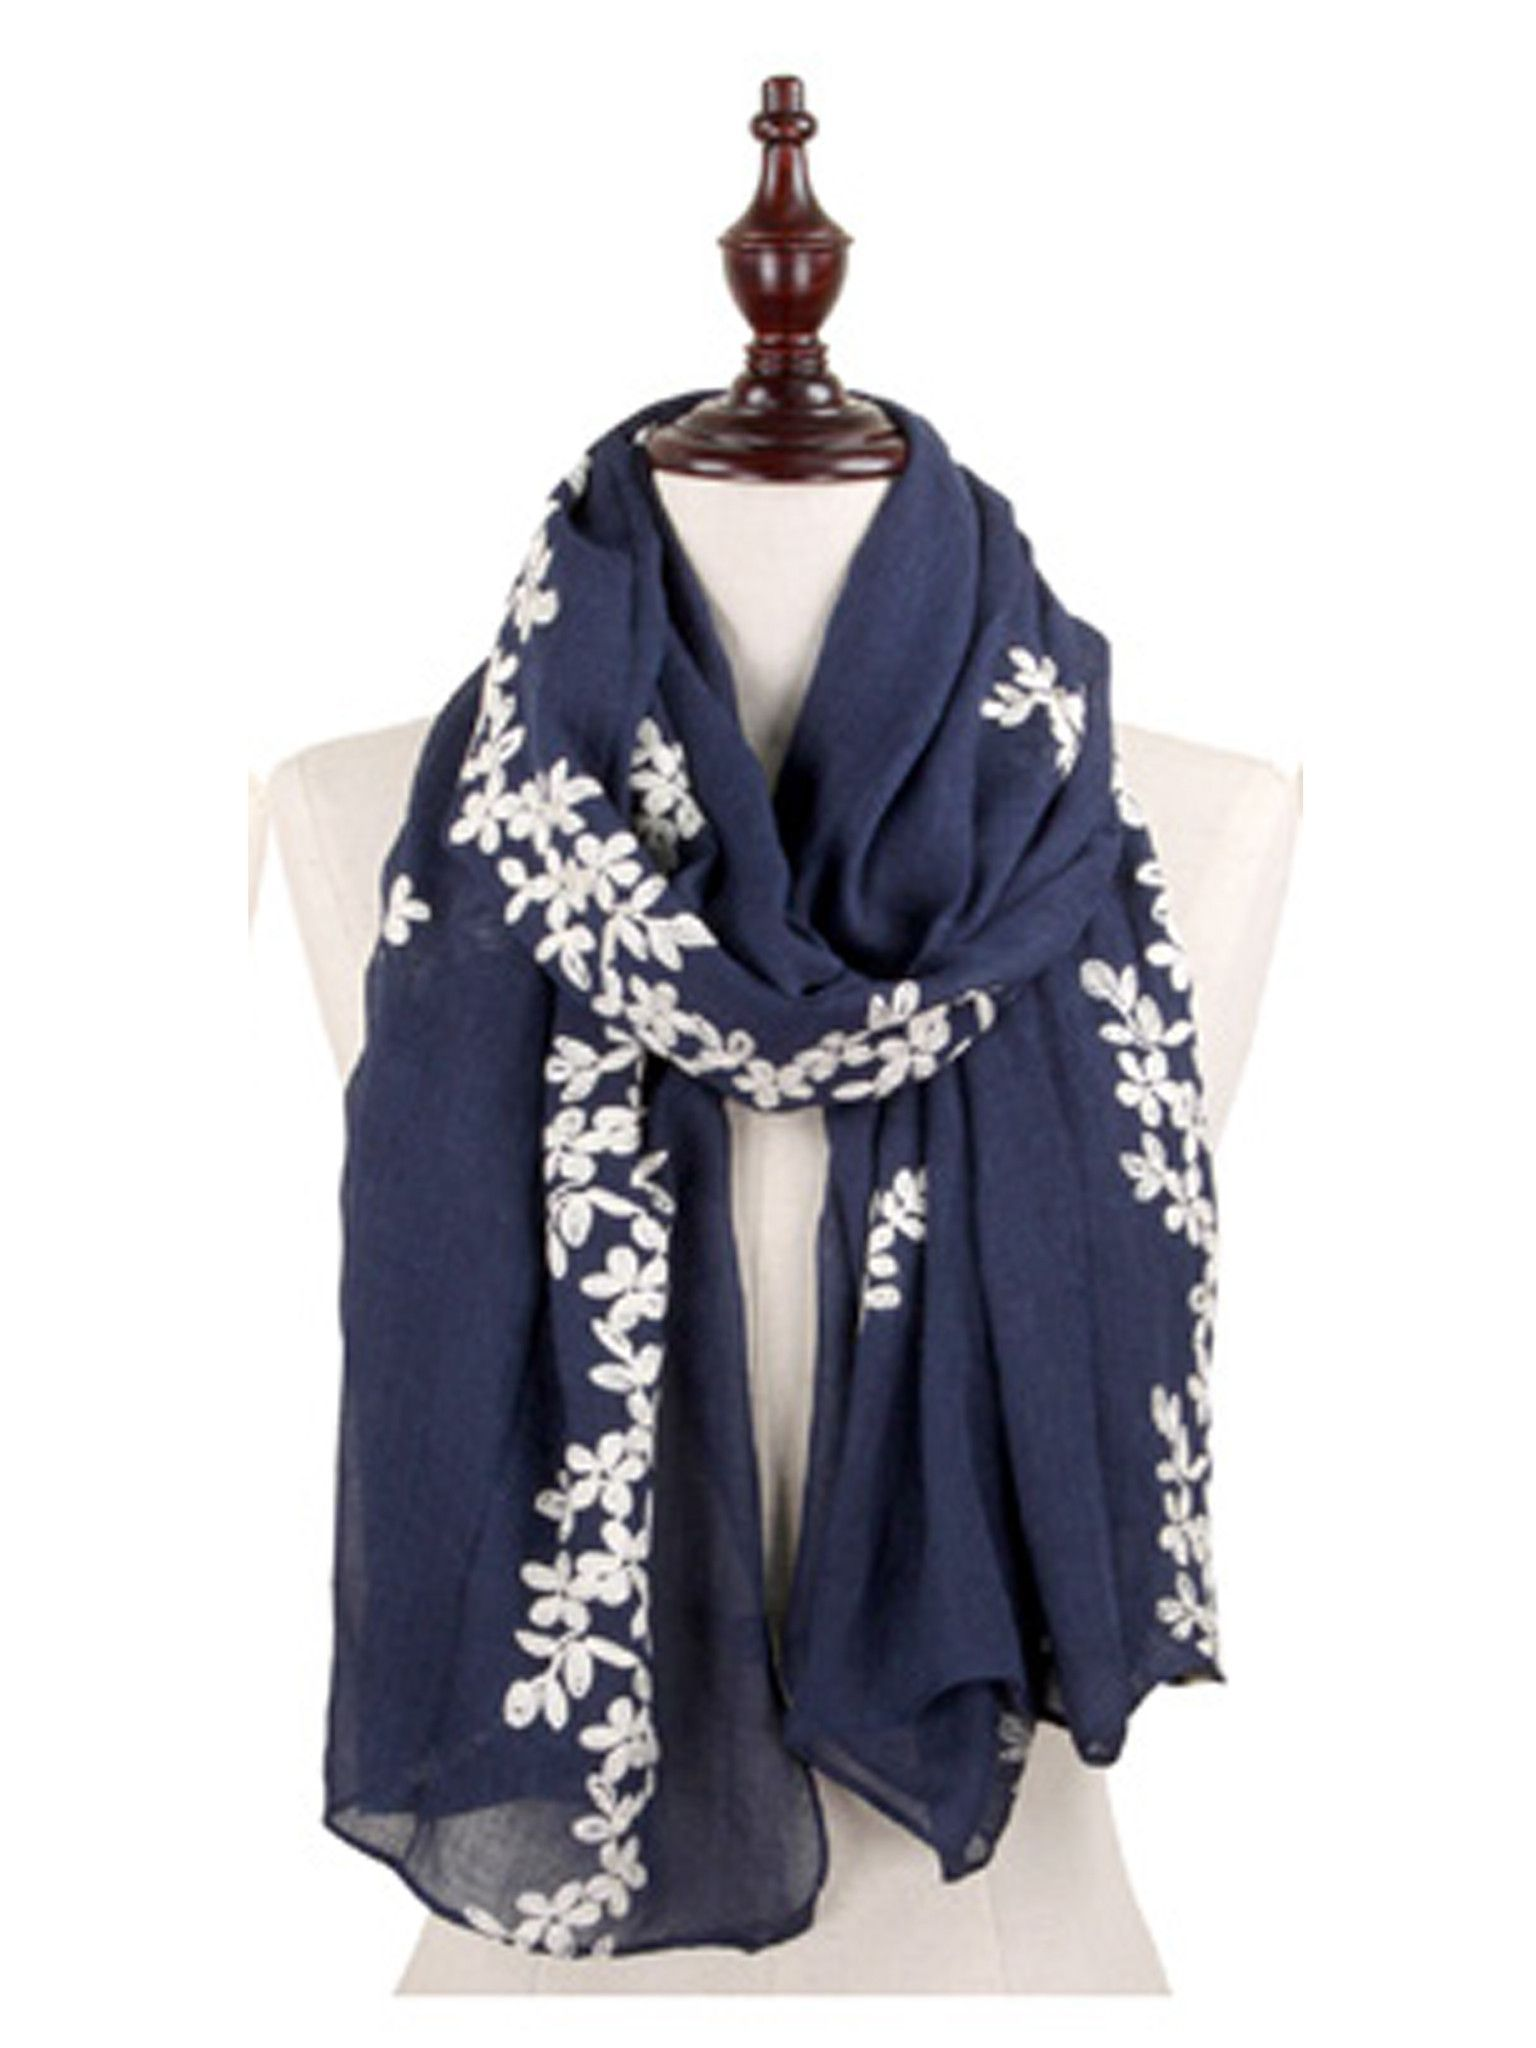 Best 25 Accessorize Scarves Ideas On Pinterest Ways To Tie Scarves Tie A Scarf And Scarf